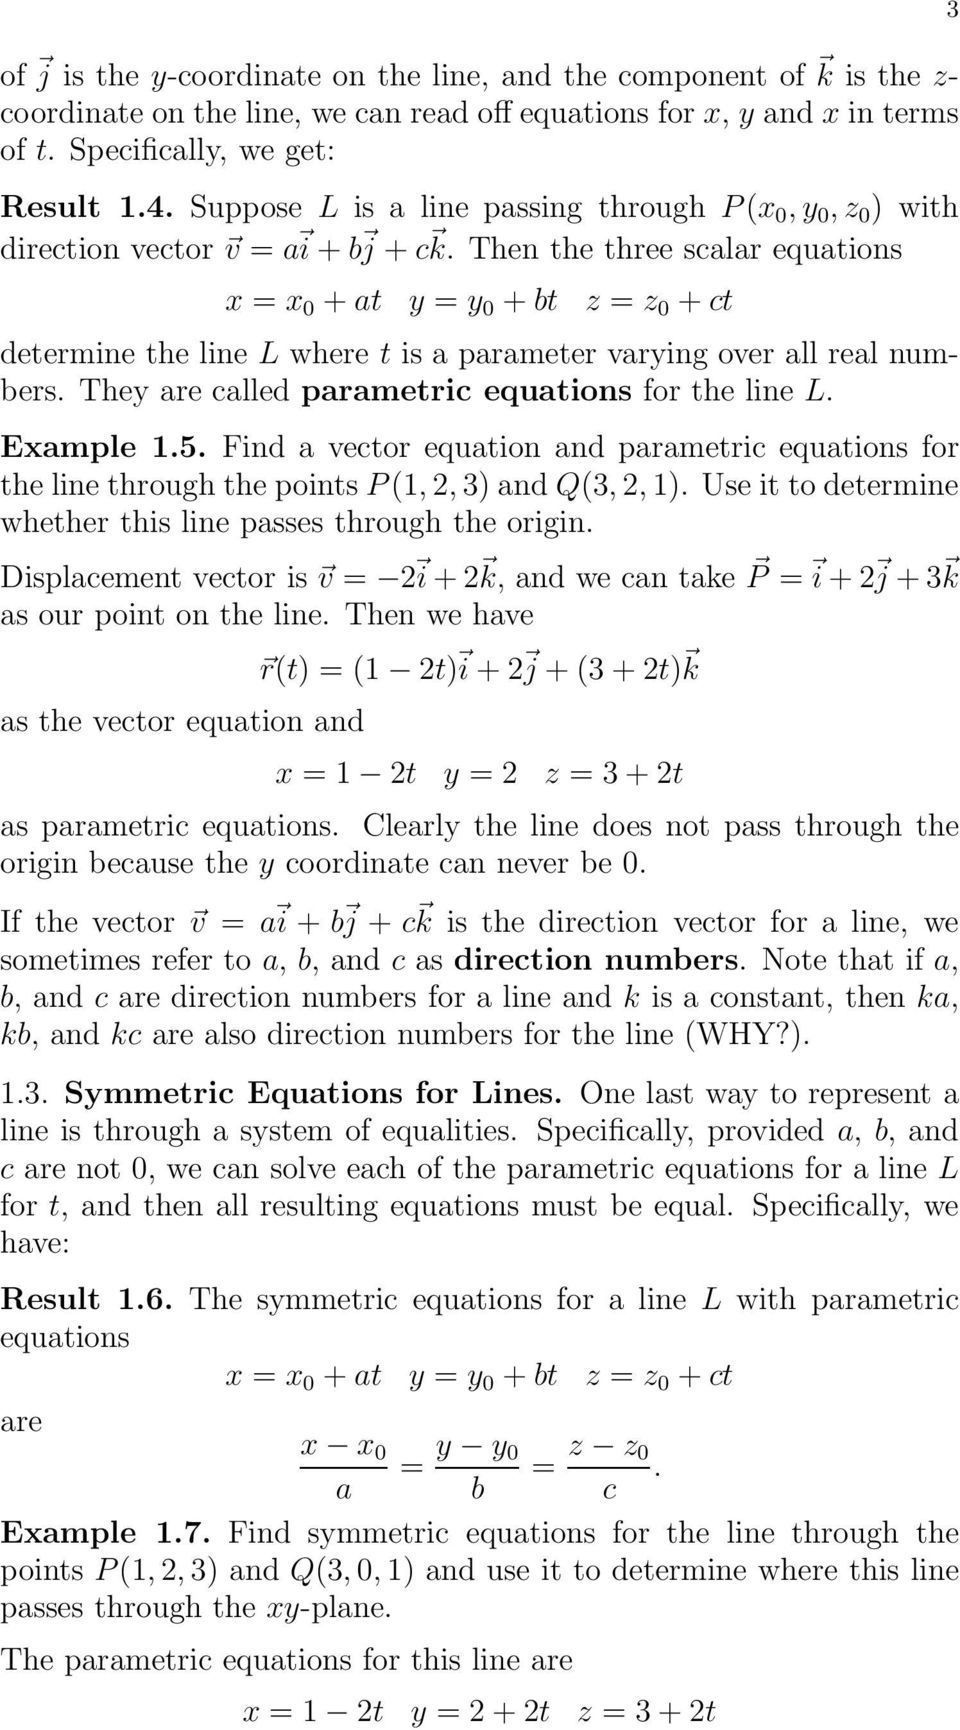 Then the three scalar equations x = x 0 + at y = y 0 + bt z = z 0 + ct determine the line L where t is a parameter varying over all real numbers. They are called parametric equations for the line L.